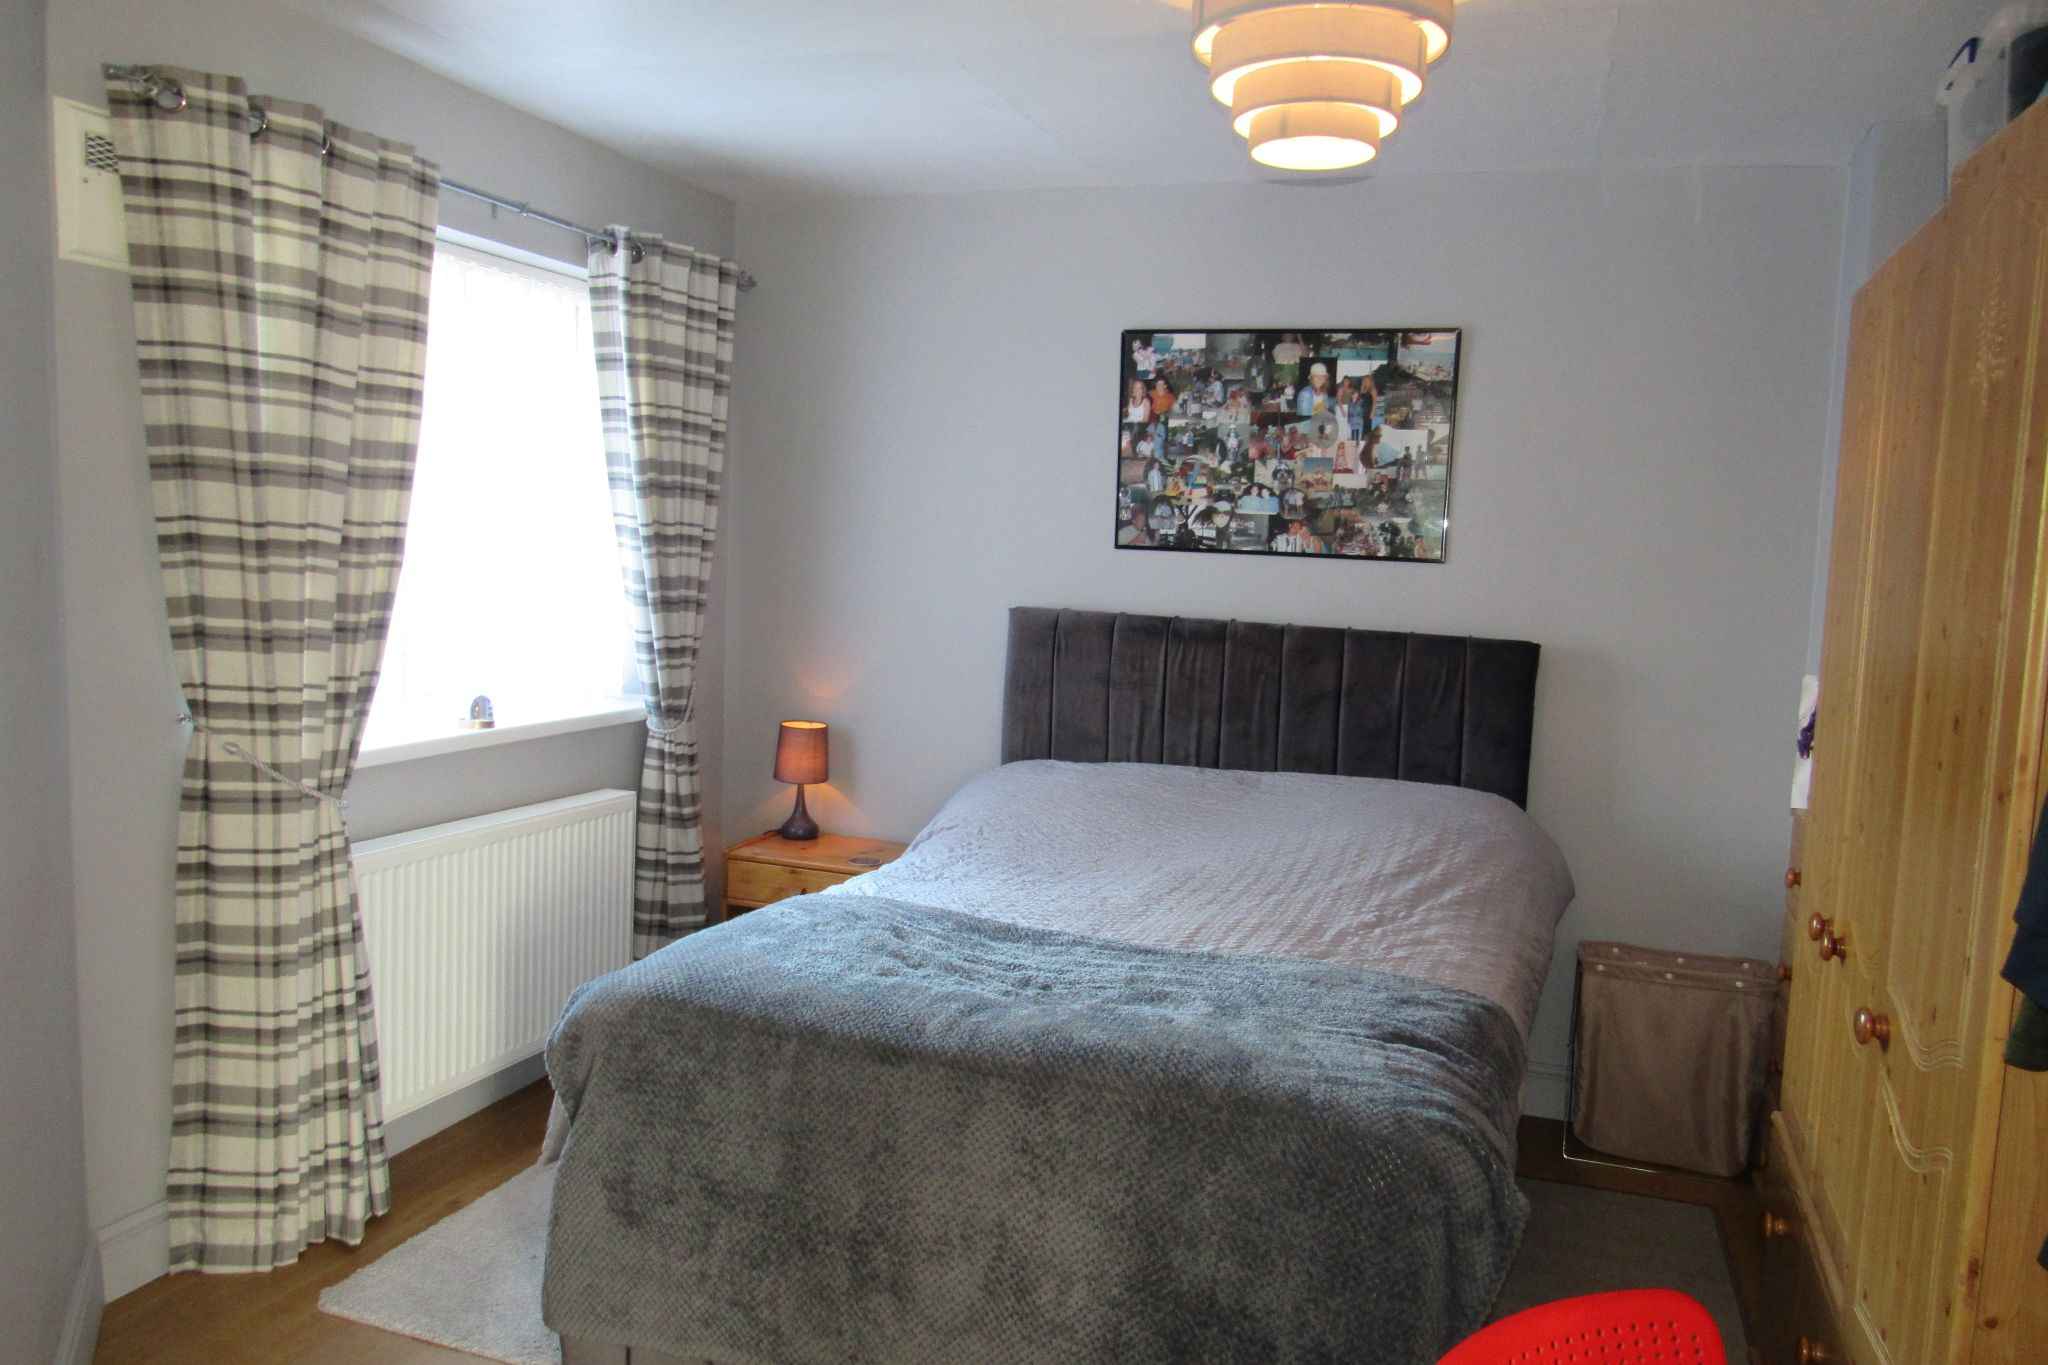 3 bedroom end terraced house SSTC in Manchester - Photograph 10.